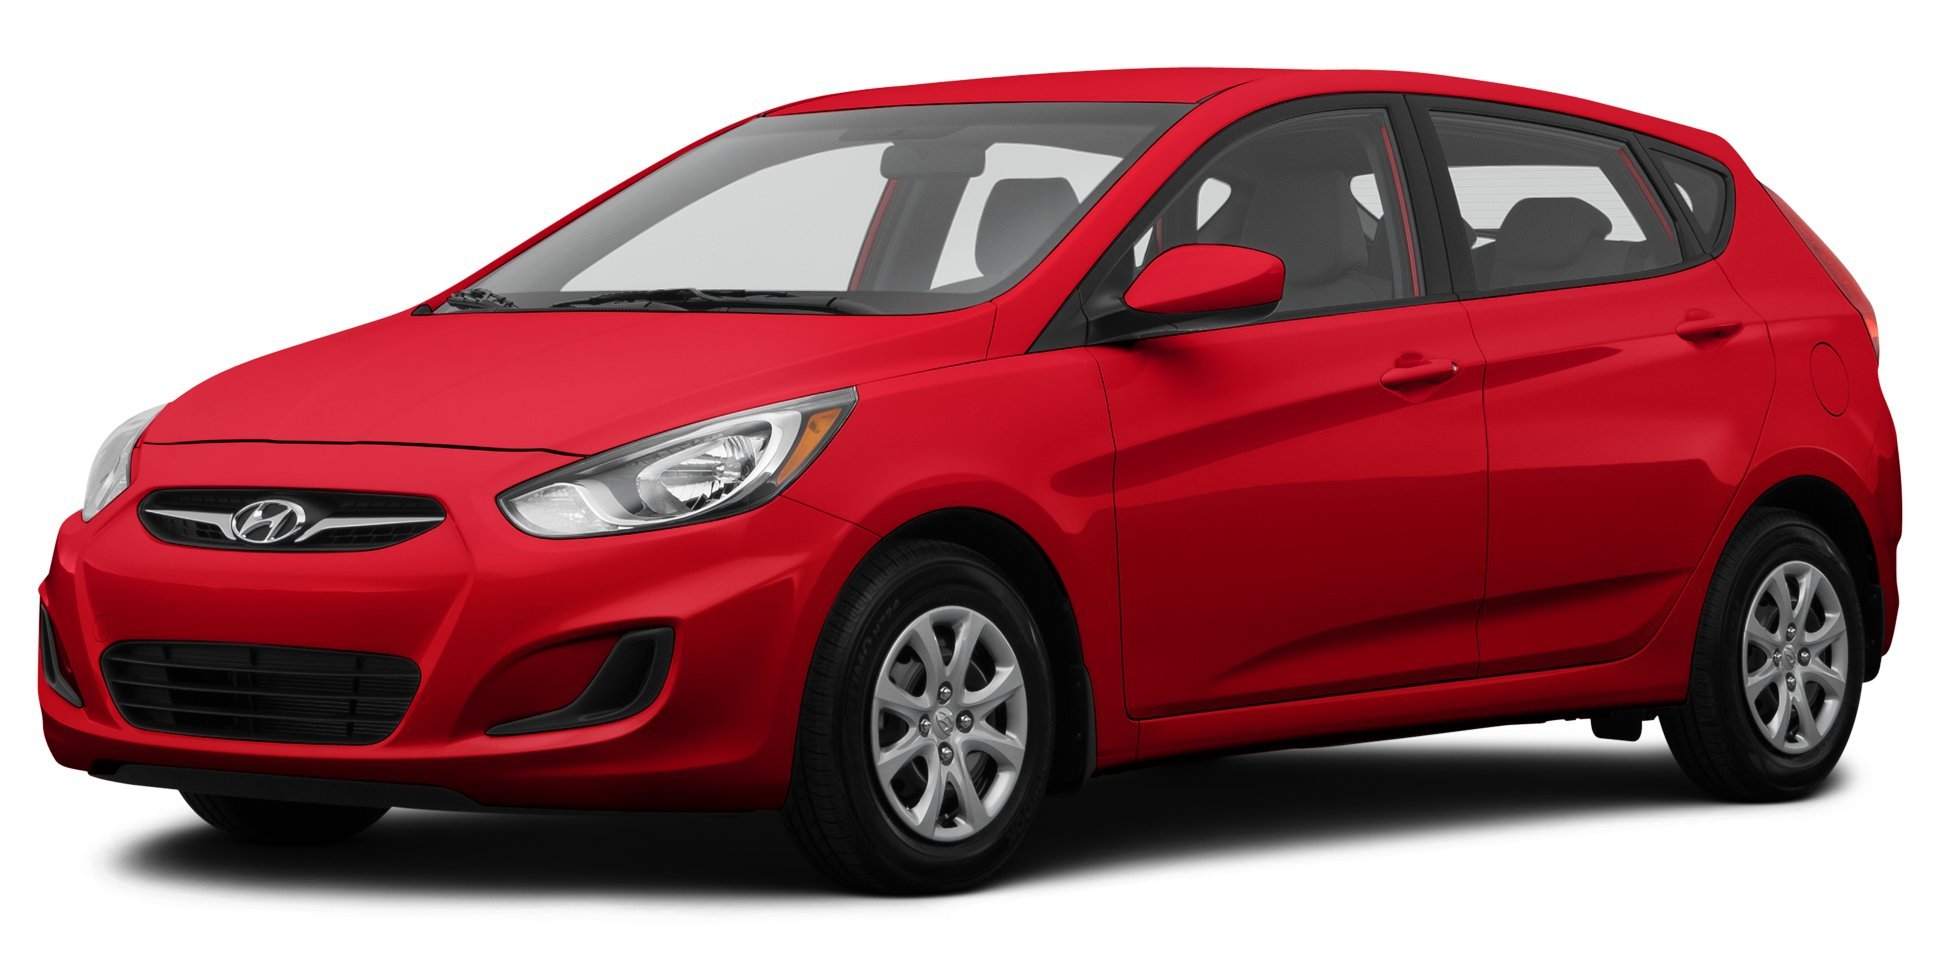 ... 2014 Hyundai Accent GS, 5-Door Hatchback Automatic Transmission ...